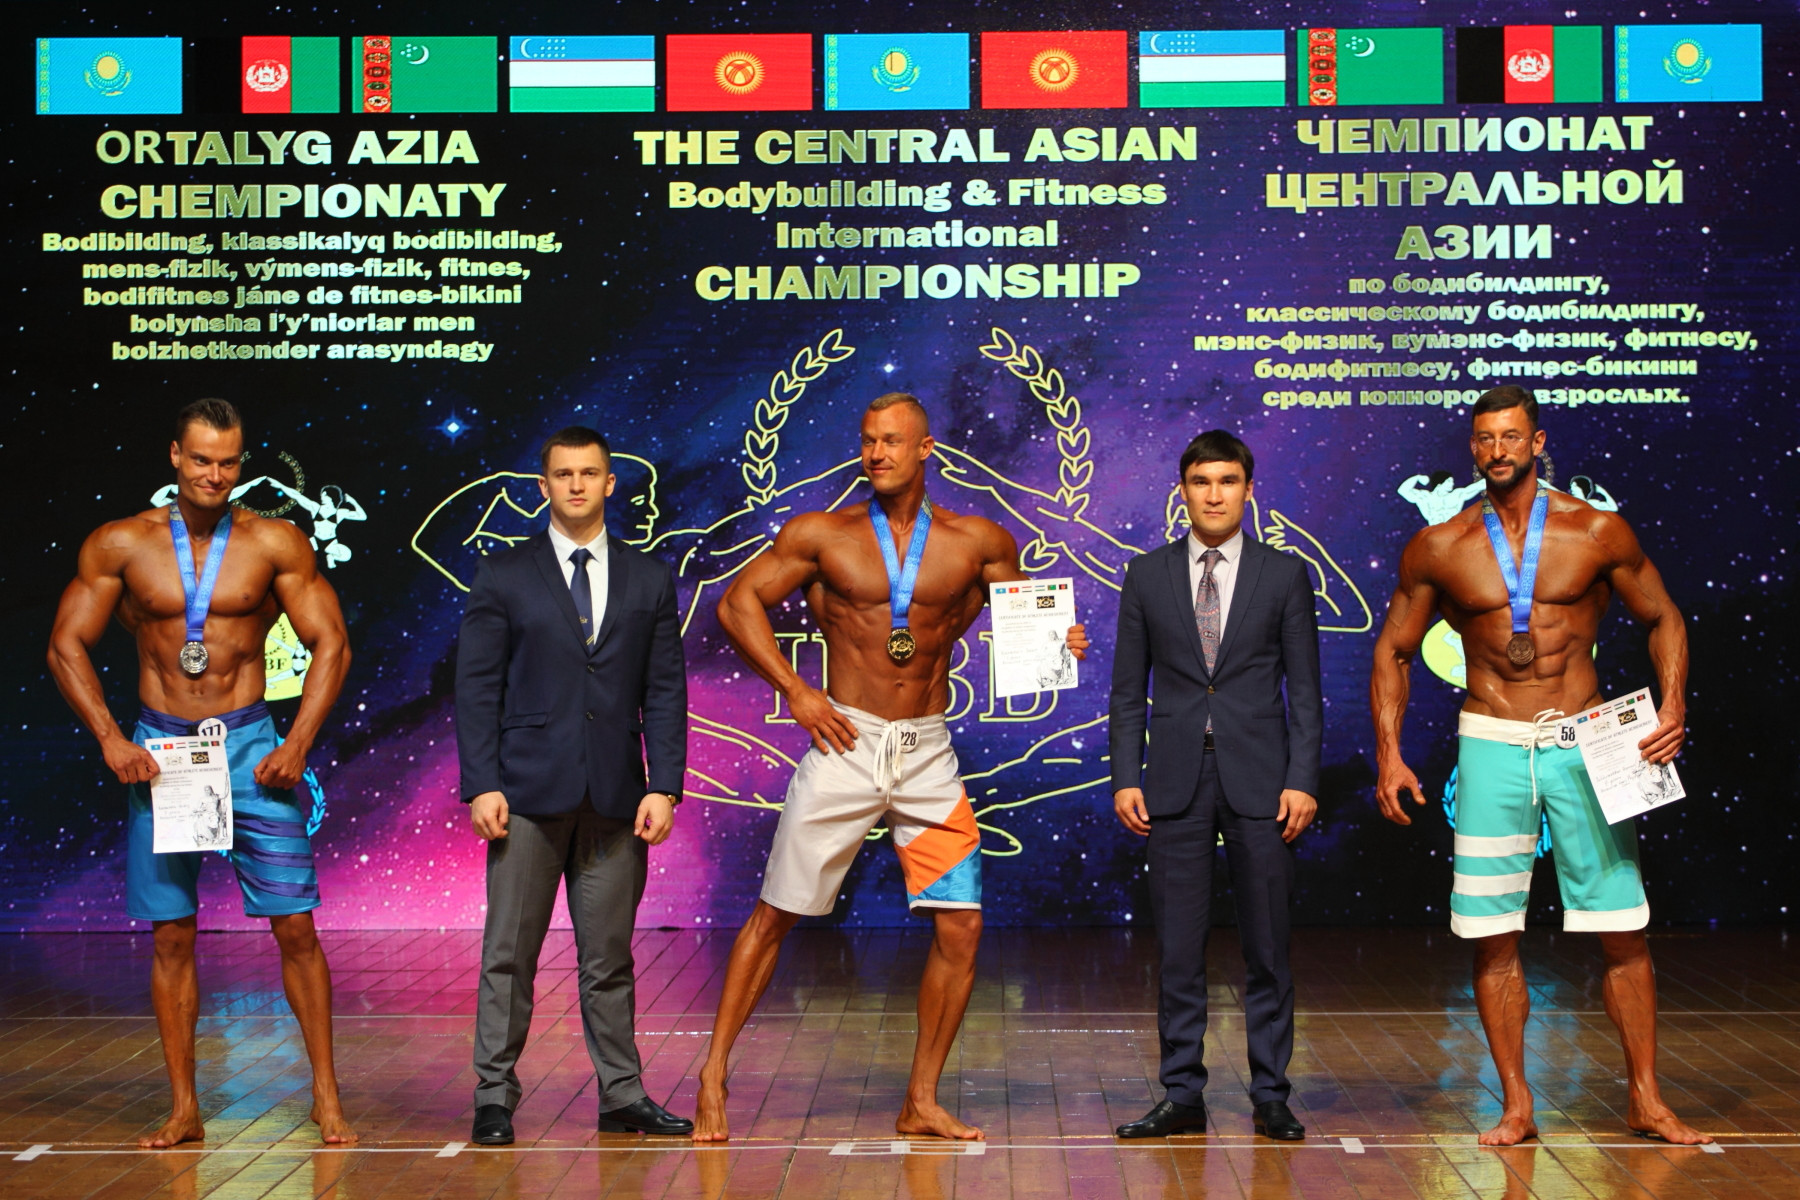 News that the Kazakhstan Bodybuilding & Fitness Federation had been recoginised by its National Olympic Committee came on the eve of the IFBB Central Asian Championships in Nur-Sultan ©IFBB